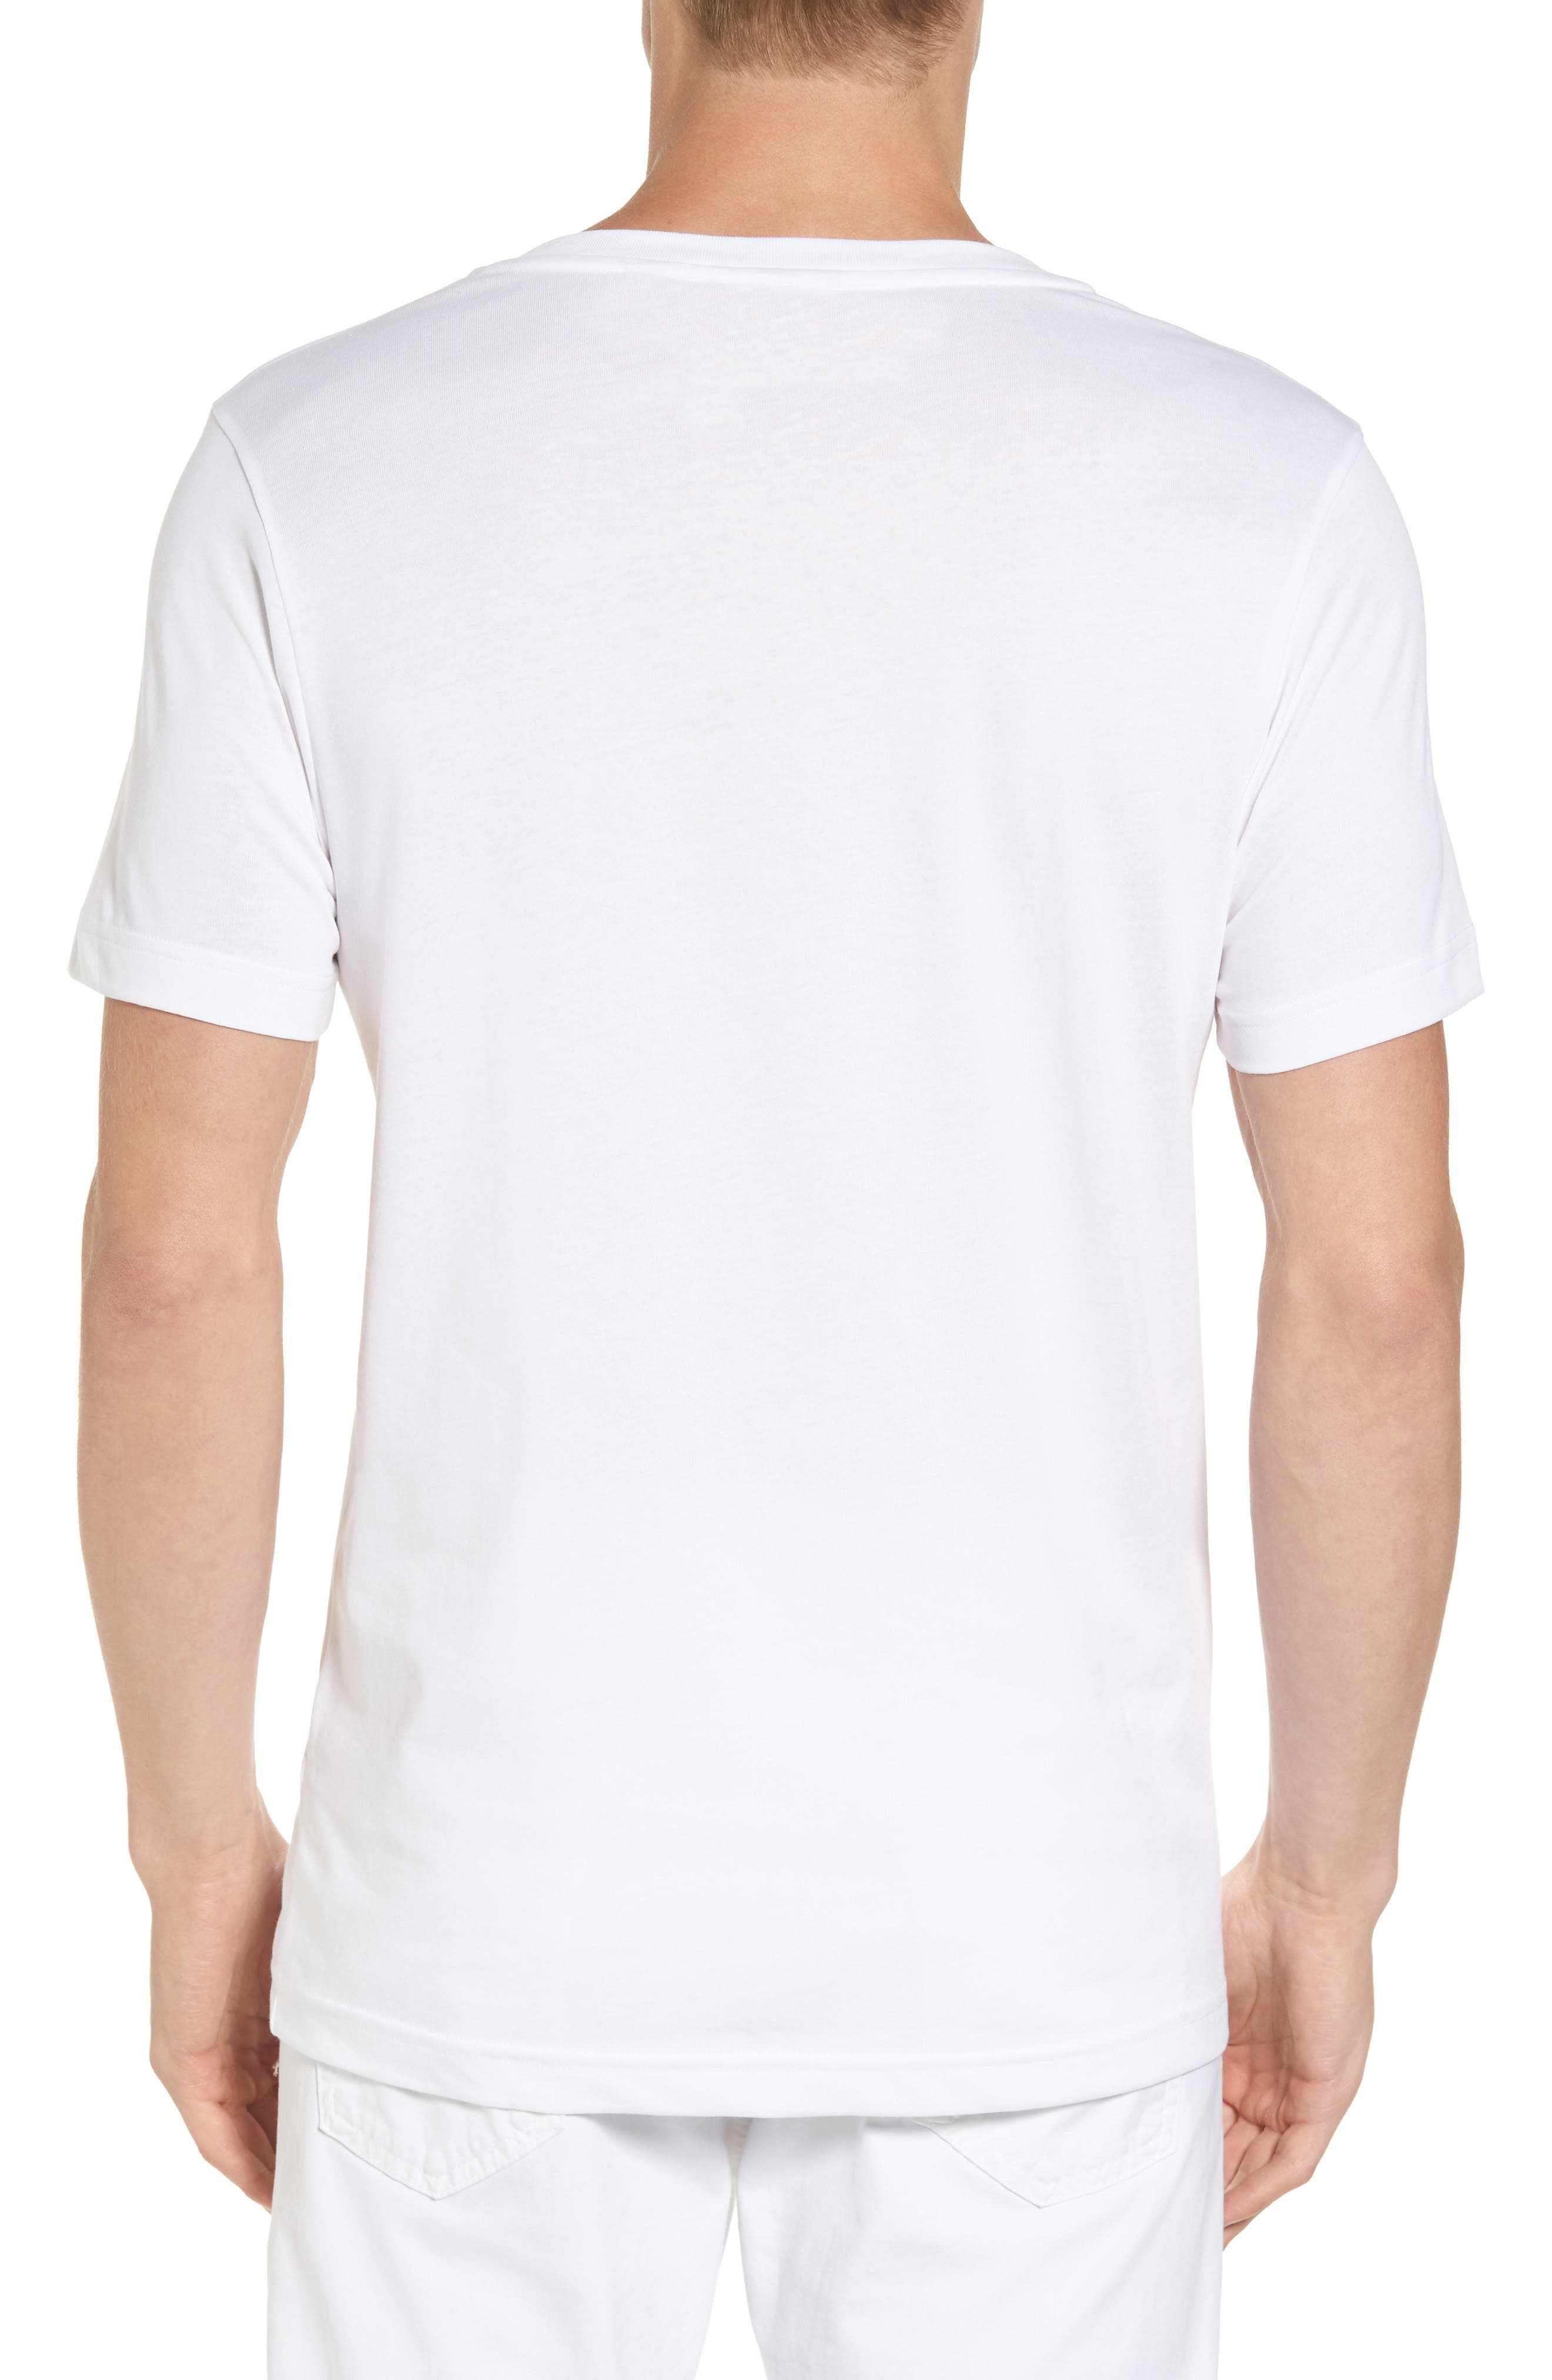 Alternate Image 2  - Lacoste Vertical Graphic T-Shirt